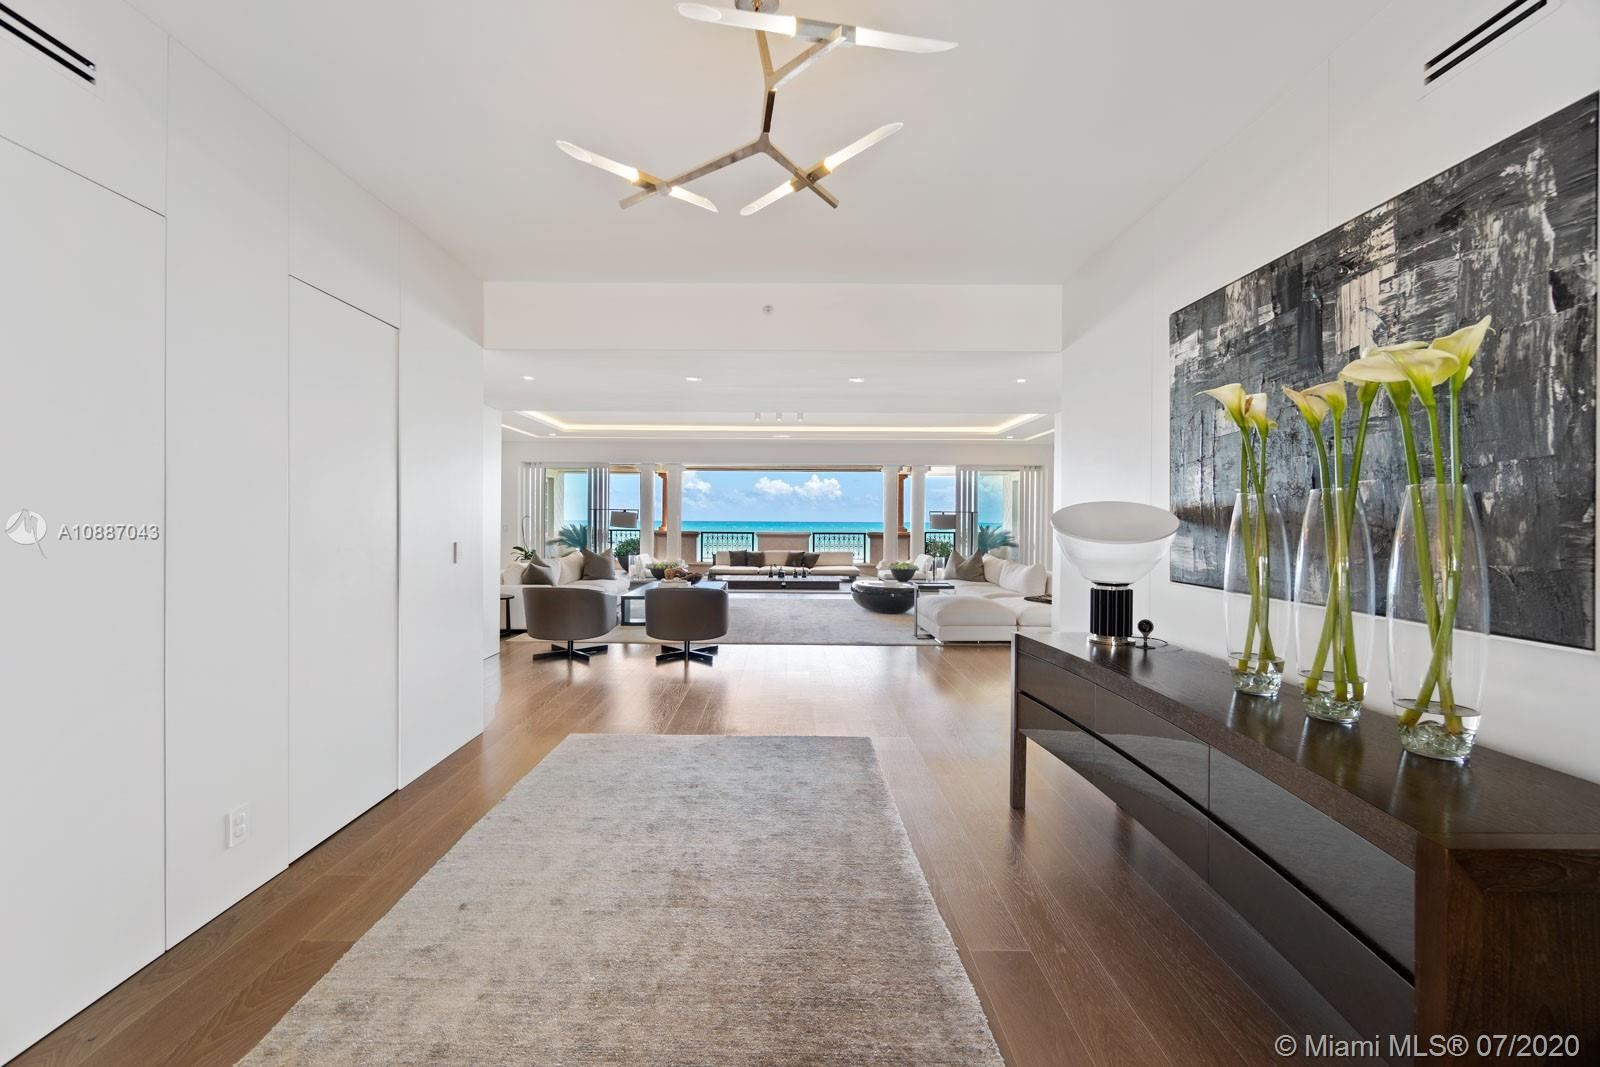 Photo 14 of Listing MLS a10887043 in 7764 Fisher Island Dr #7764 Miami Beach FL 33109